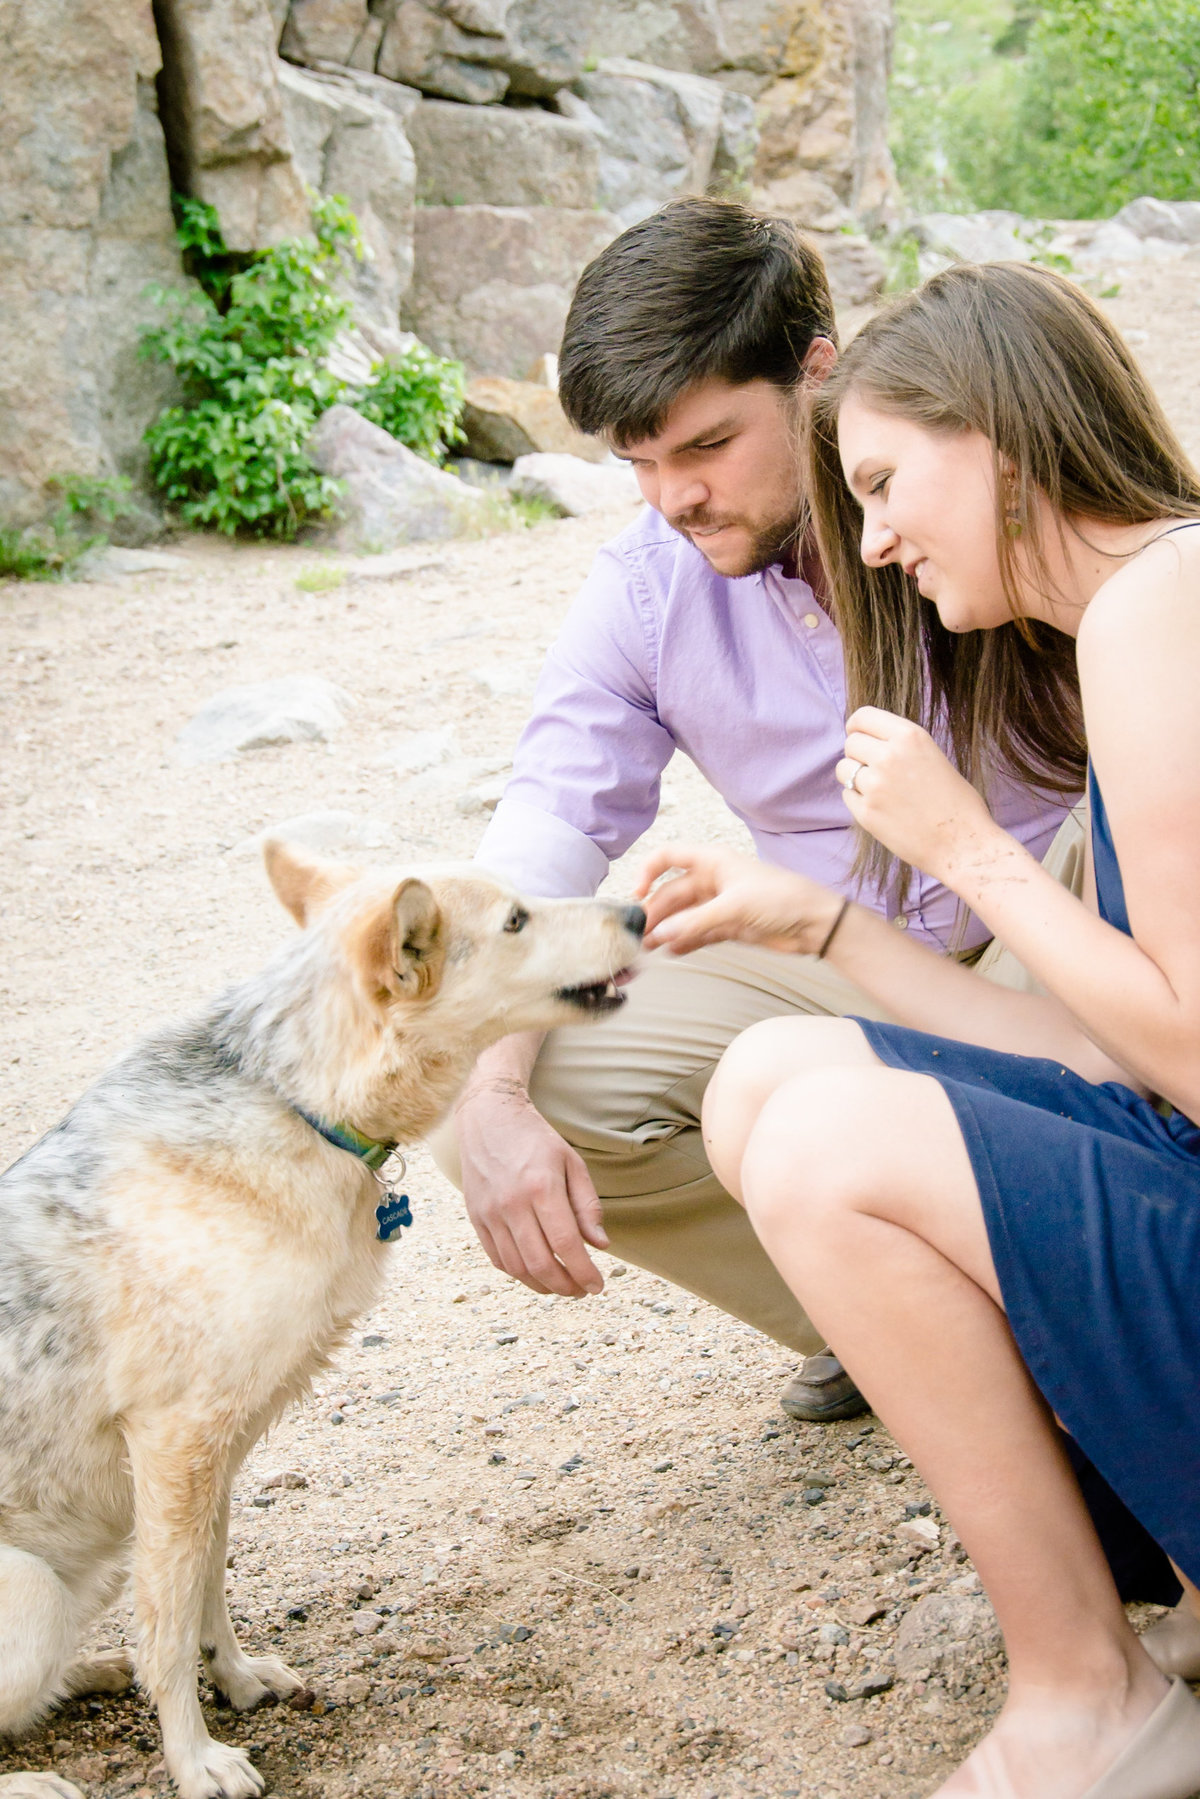 2017-06-12 Mandy+David+Engagment+Boulder+CO (53 of 55)